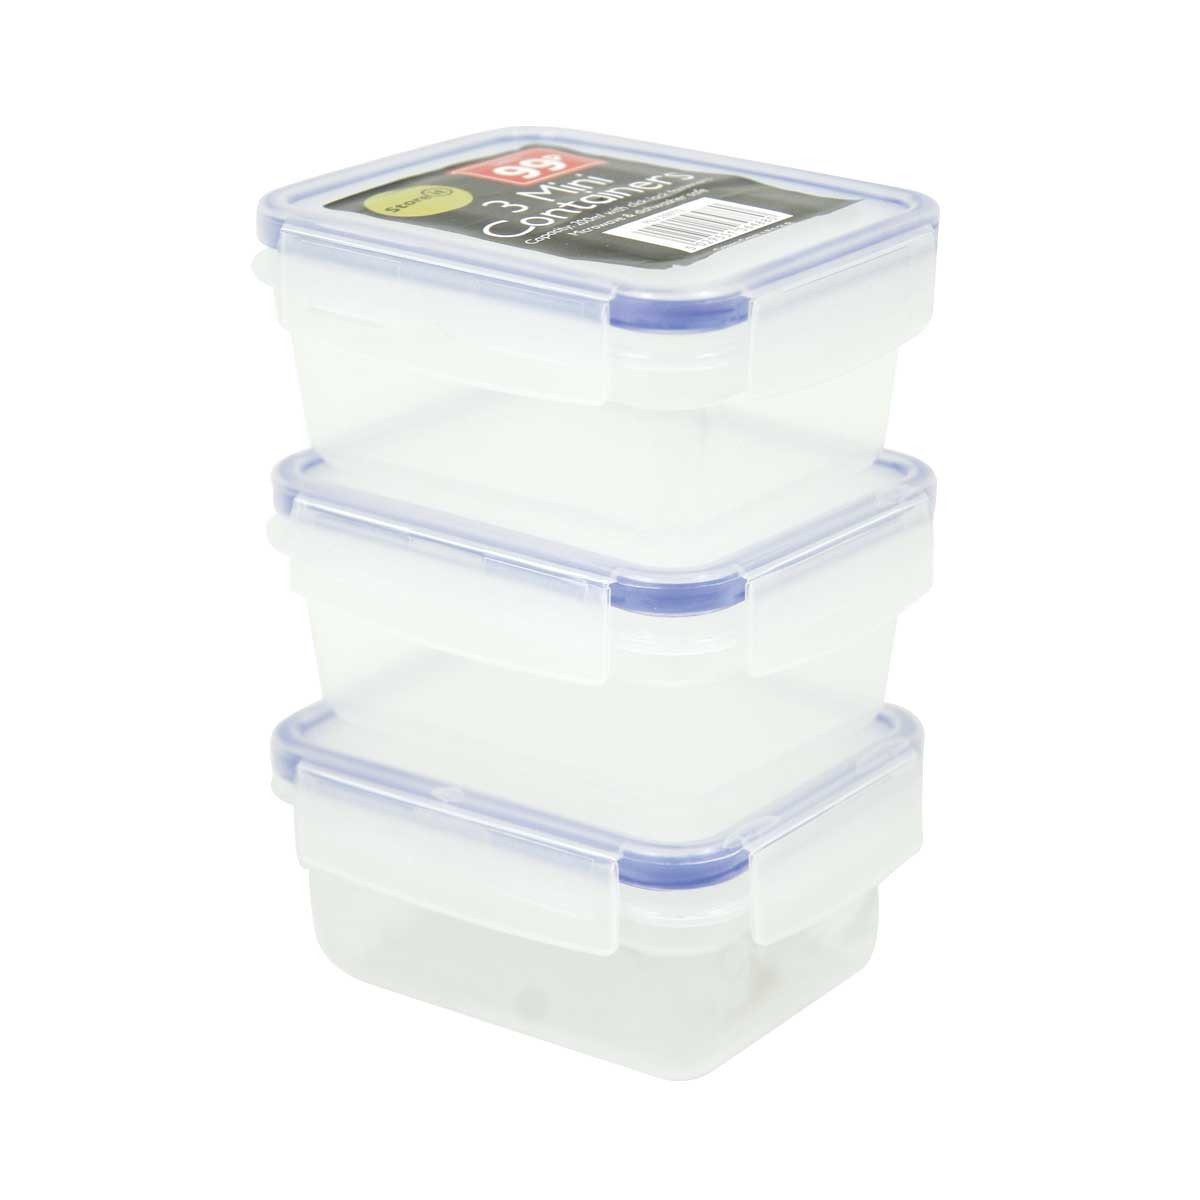 3 PACK SQUARE FOOD BOXES 200ML